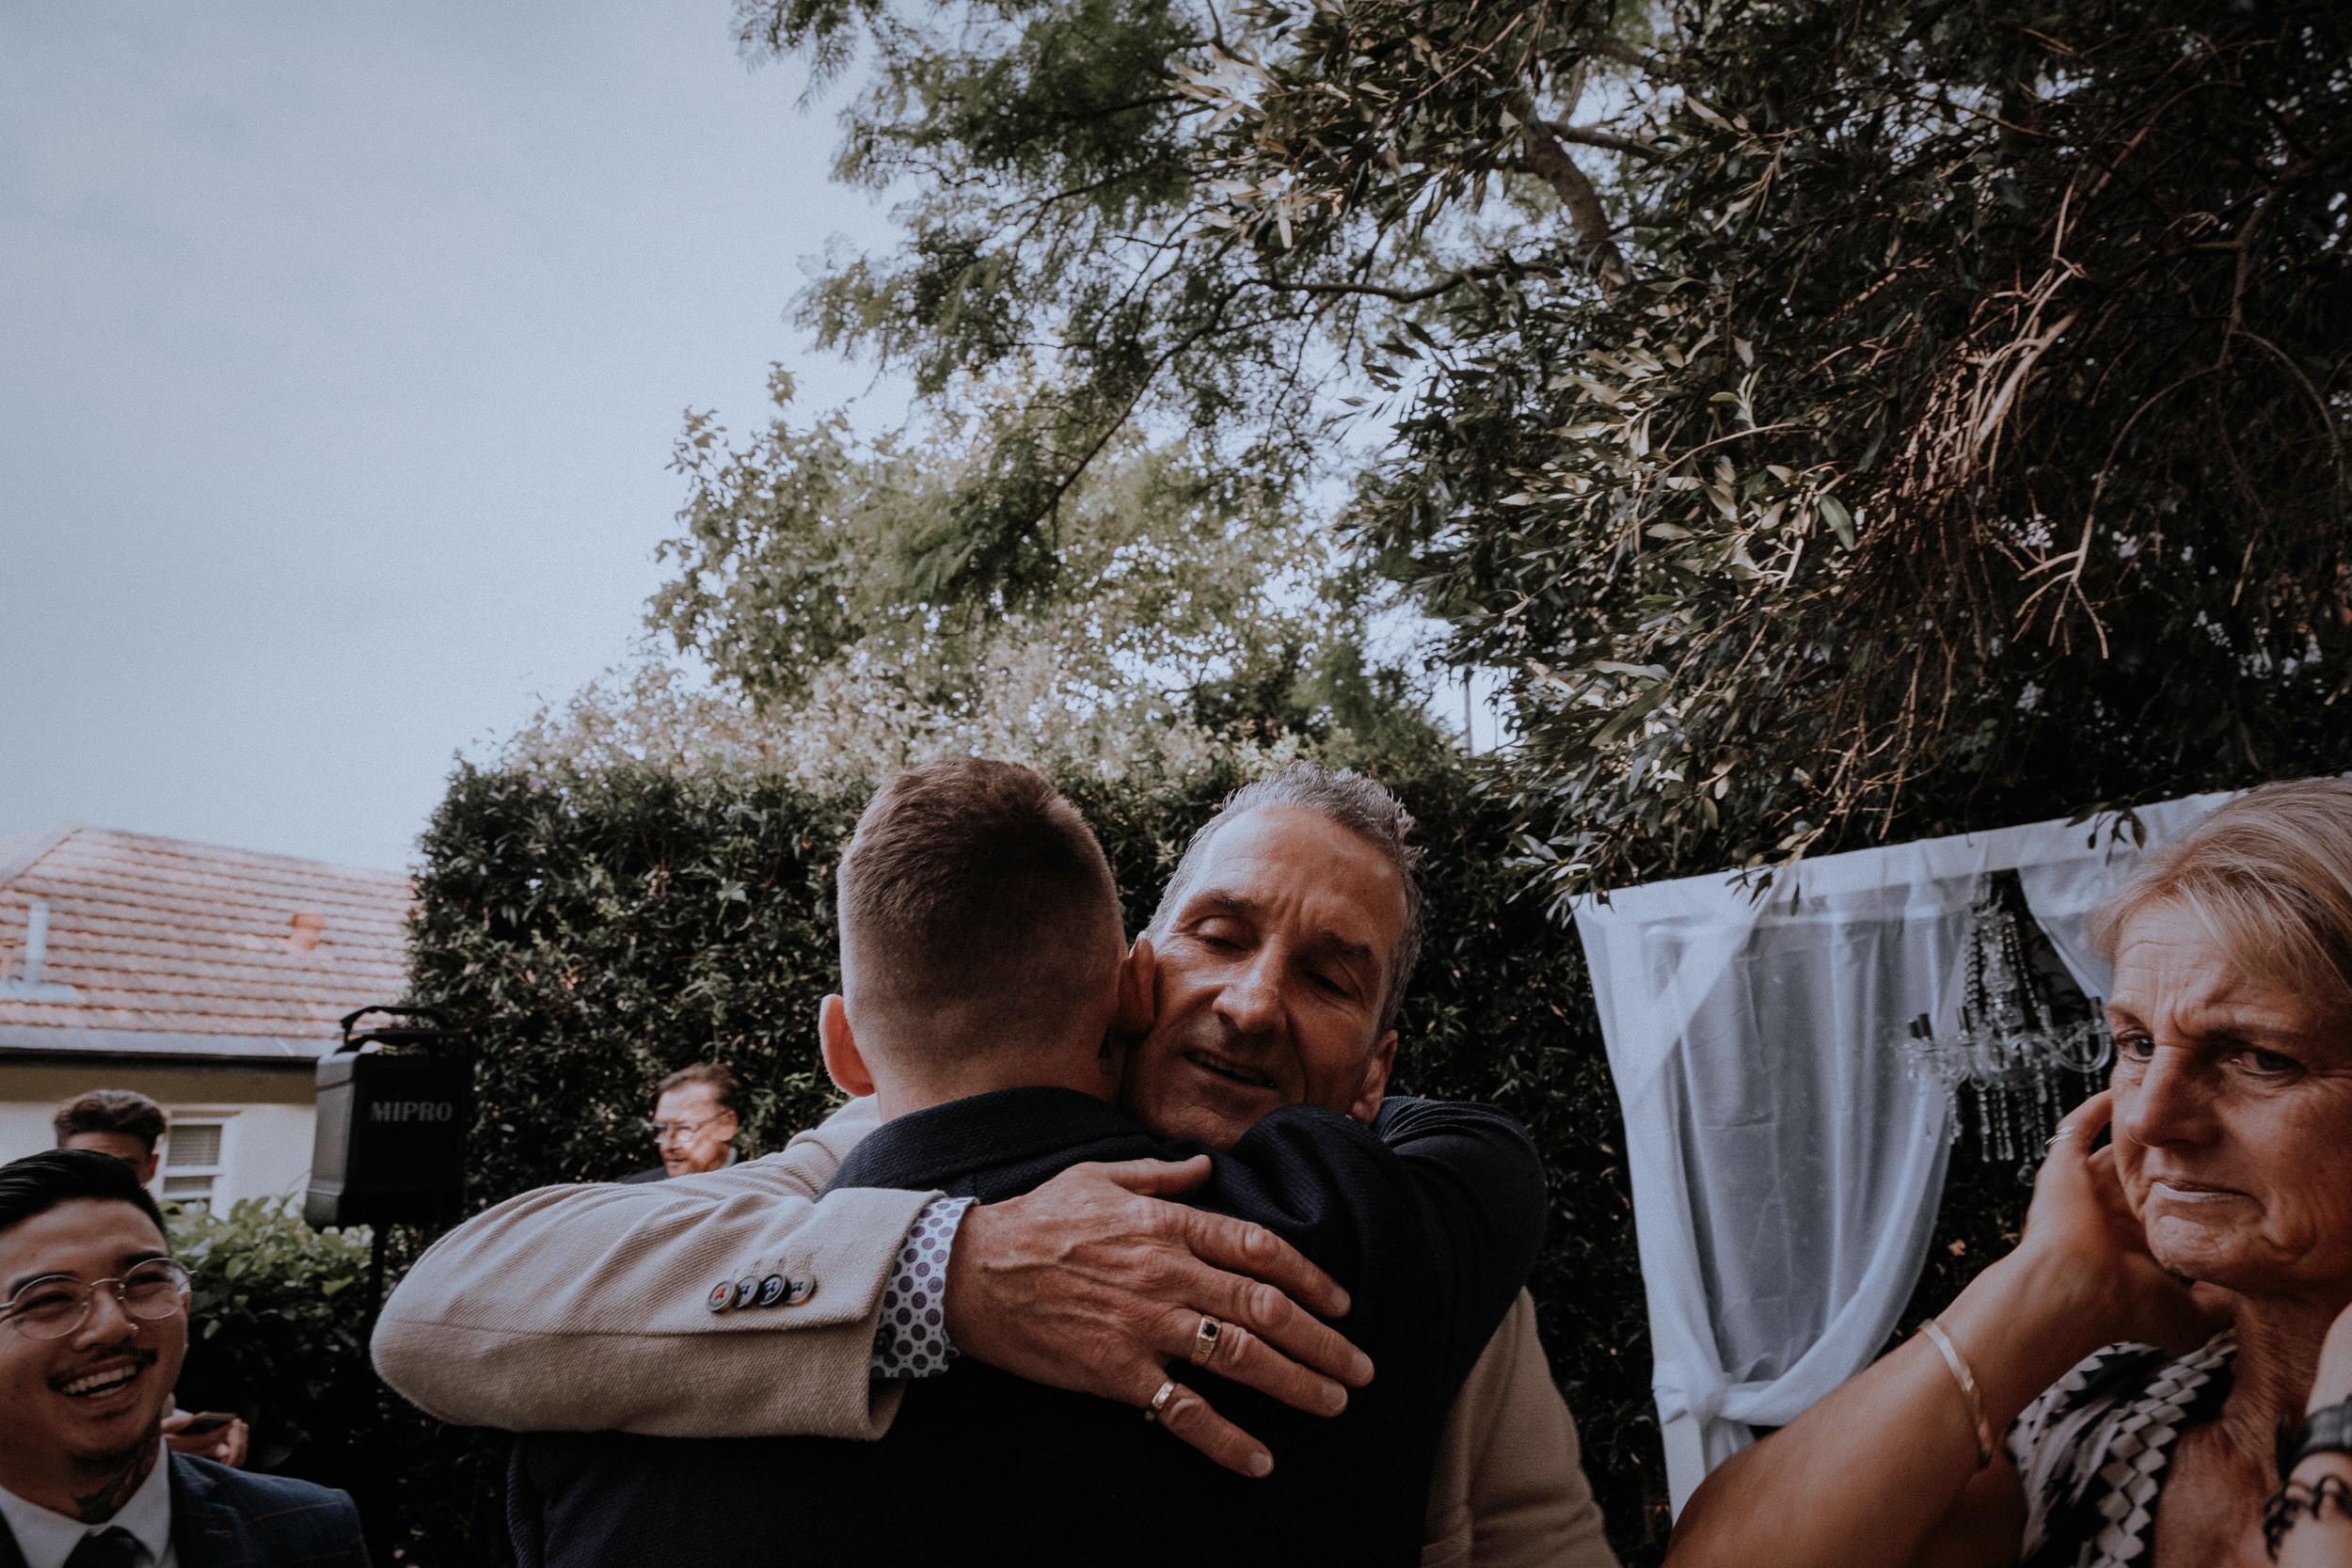 An emotional dad embraces his newly married son after his surprise wedding in Sydney